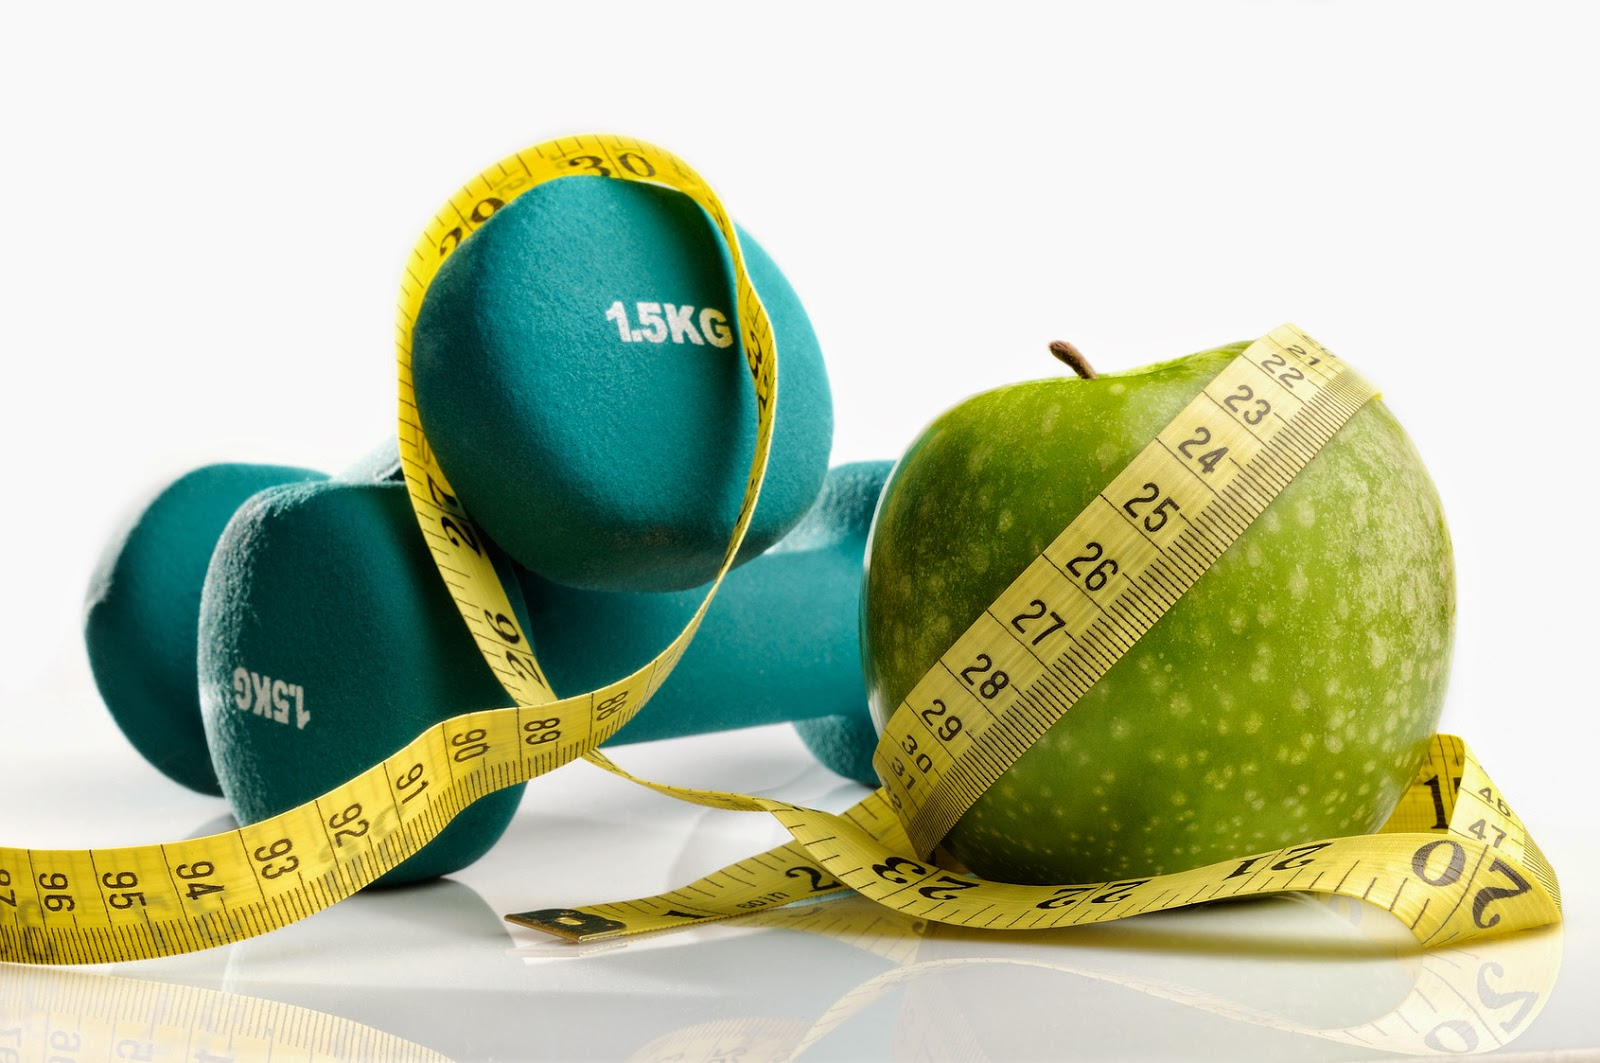 Natural Weight loss remedy - Apples